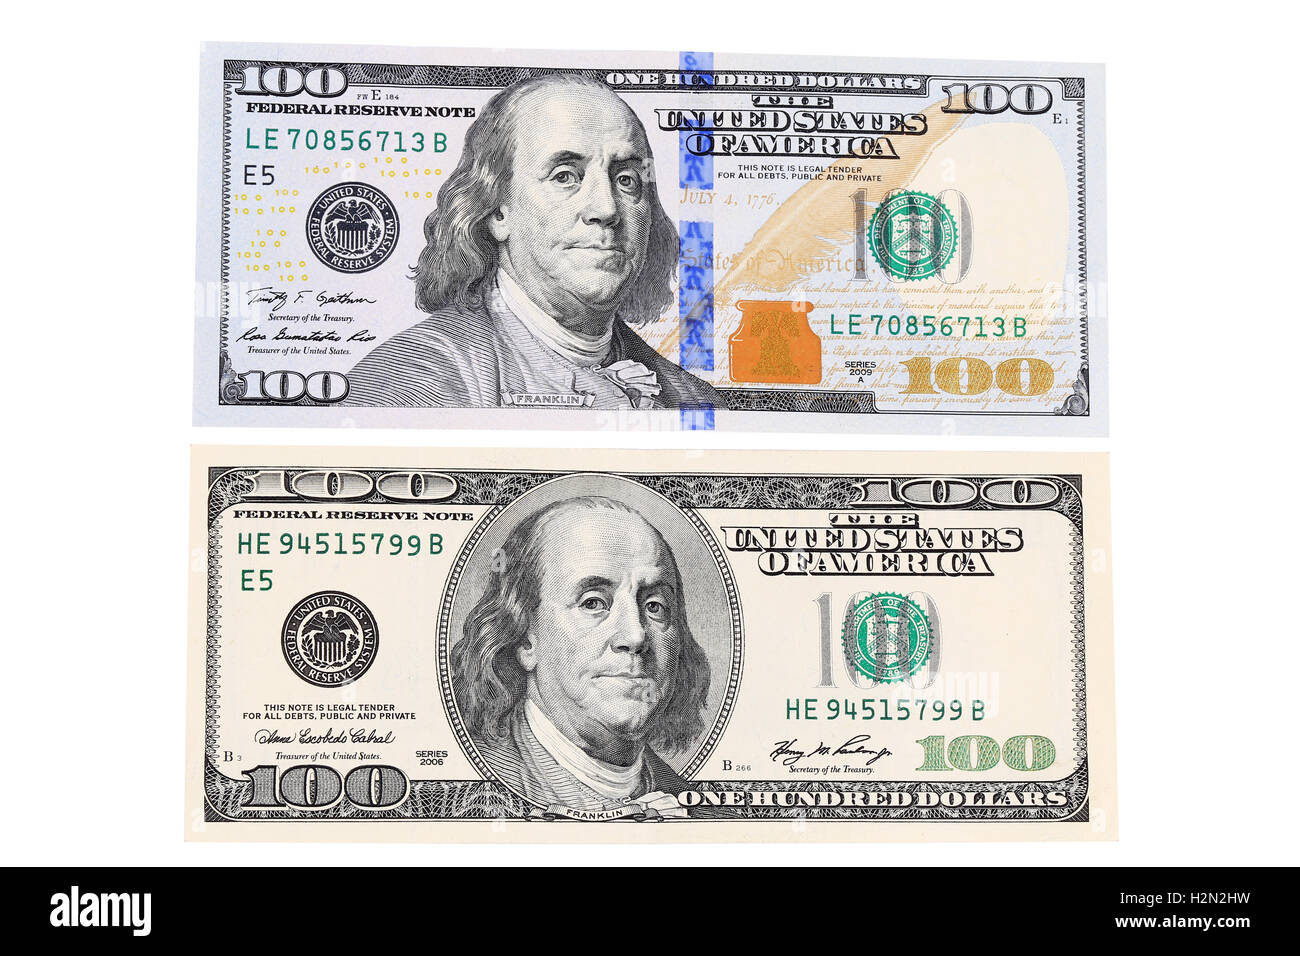 Top and back side of hundred dollar bill. - Stock Image